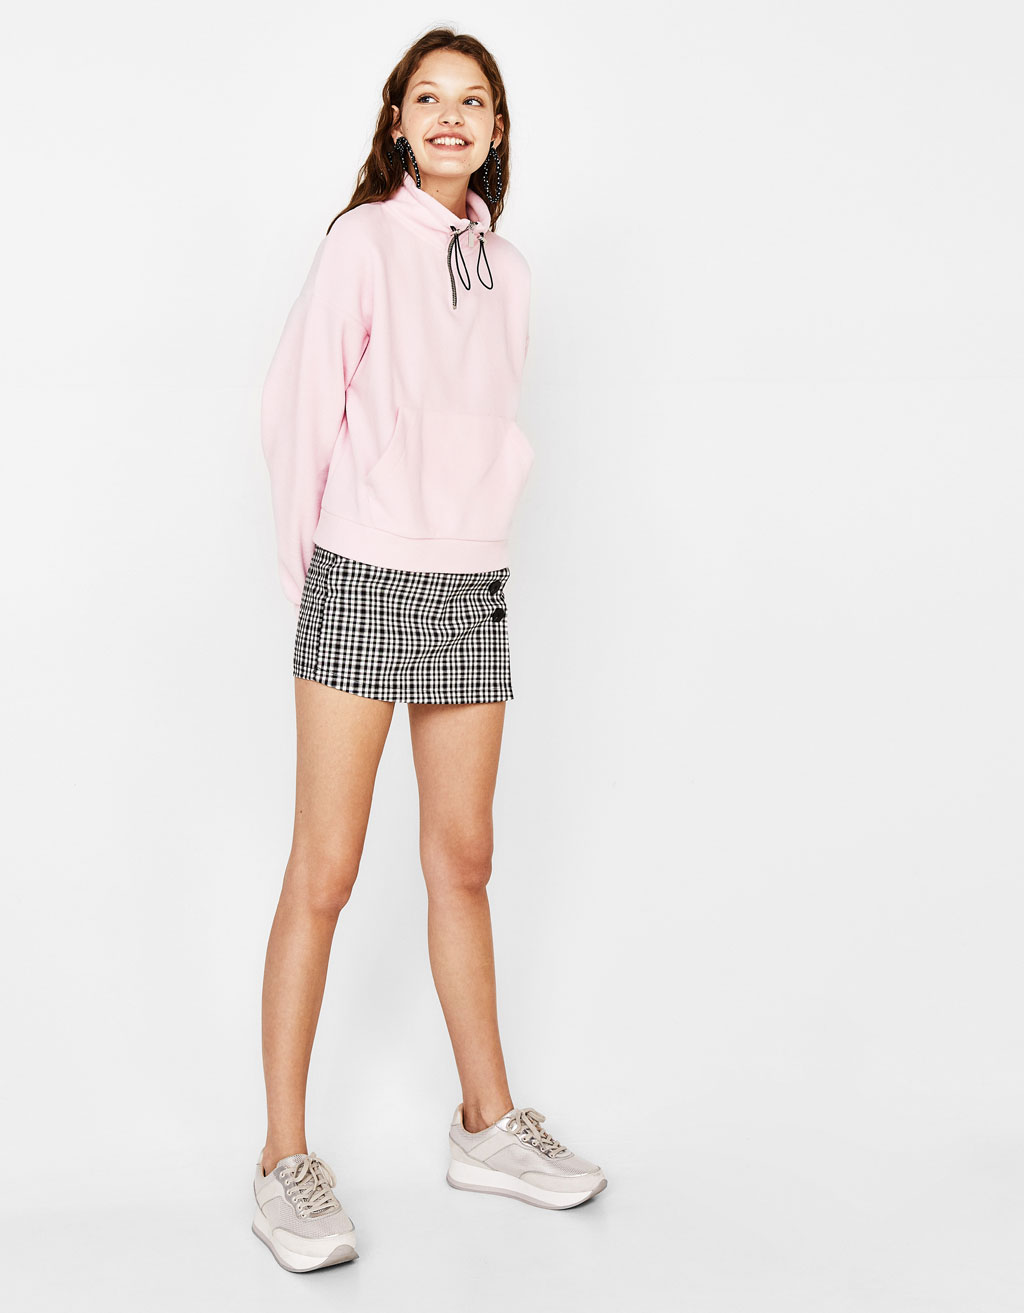 Cropped sweatshirt with pouch pocket